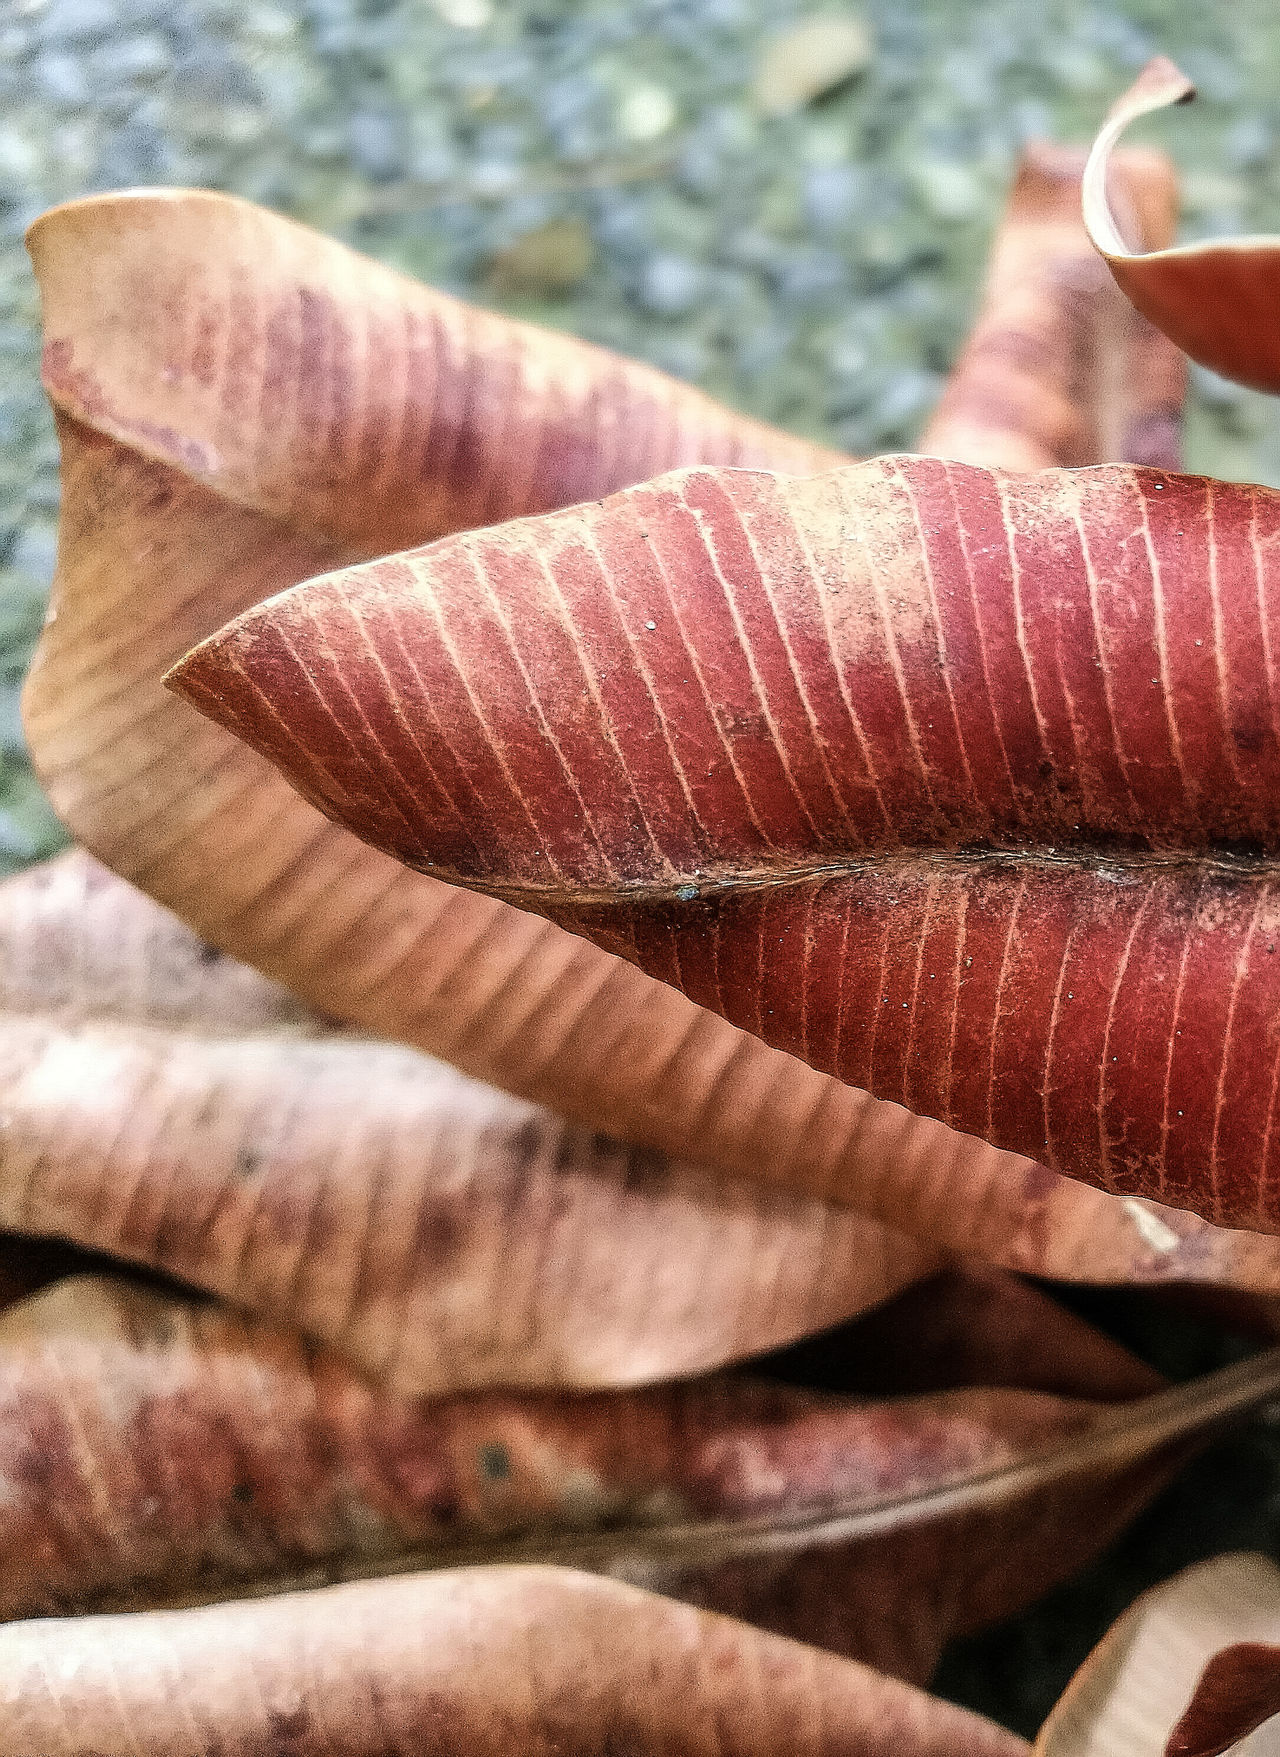 Focus Object Leaves On The Ground Leaves Dead Leaf Deadcrap Leaf Nature Curves And Lines Vertical Symmetry Horizontal Symmetry Lines Pattern Geometric Shape Horizontal No People Focus On Foreground Depth Of Field Backgrounds Curves Brownish Close-up Nature Photography